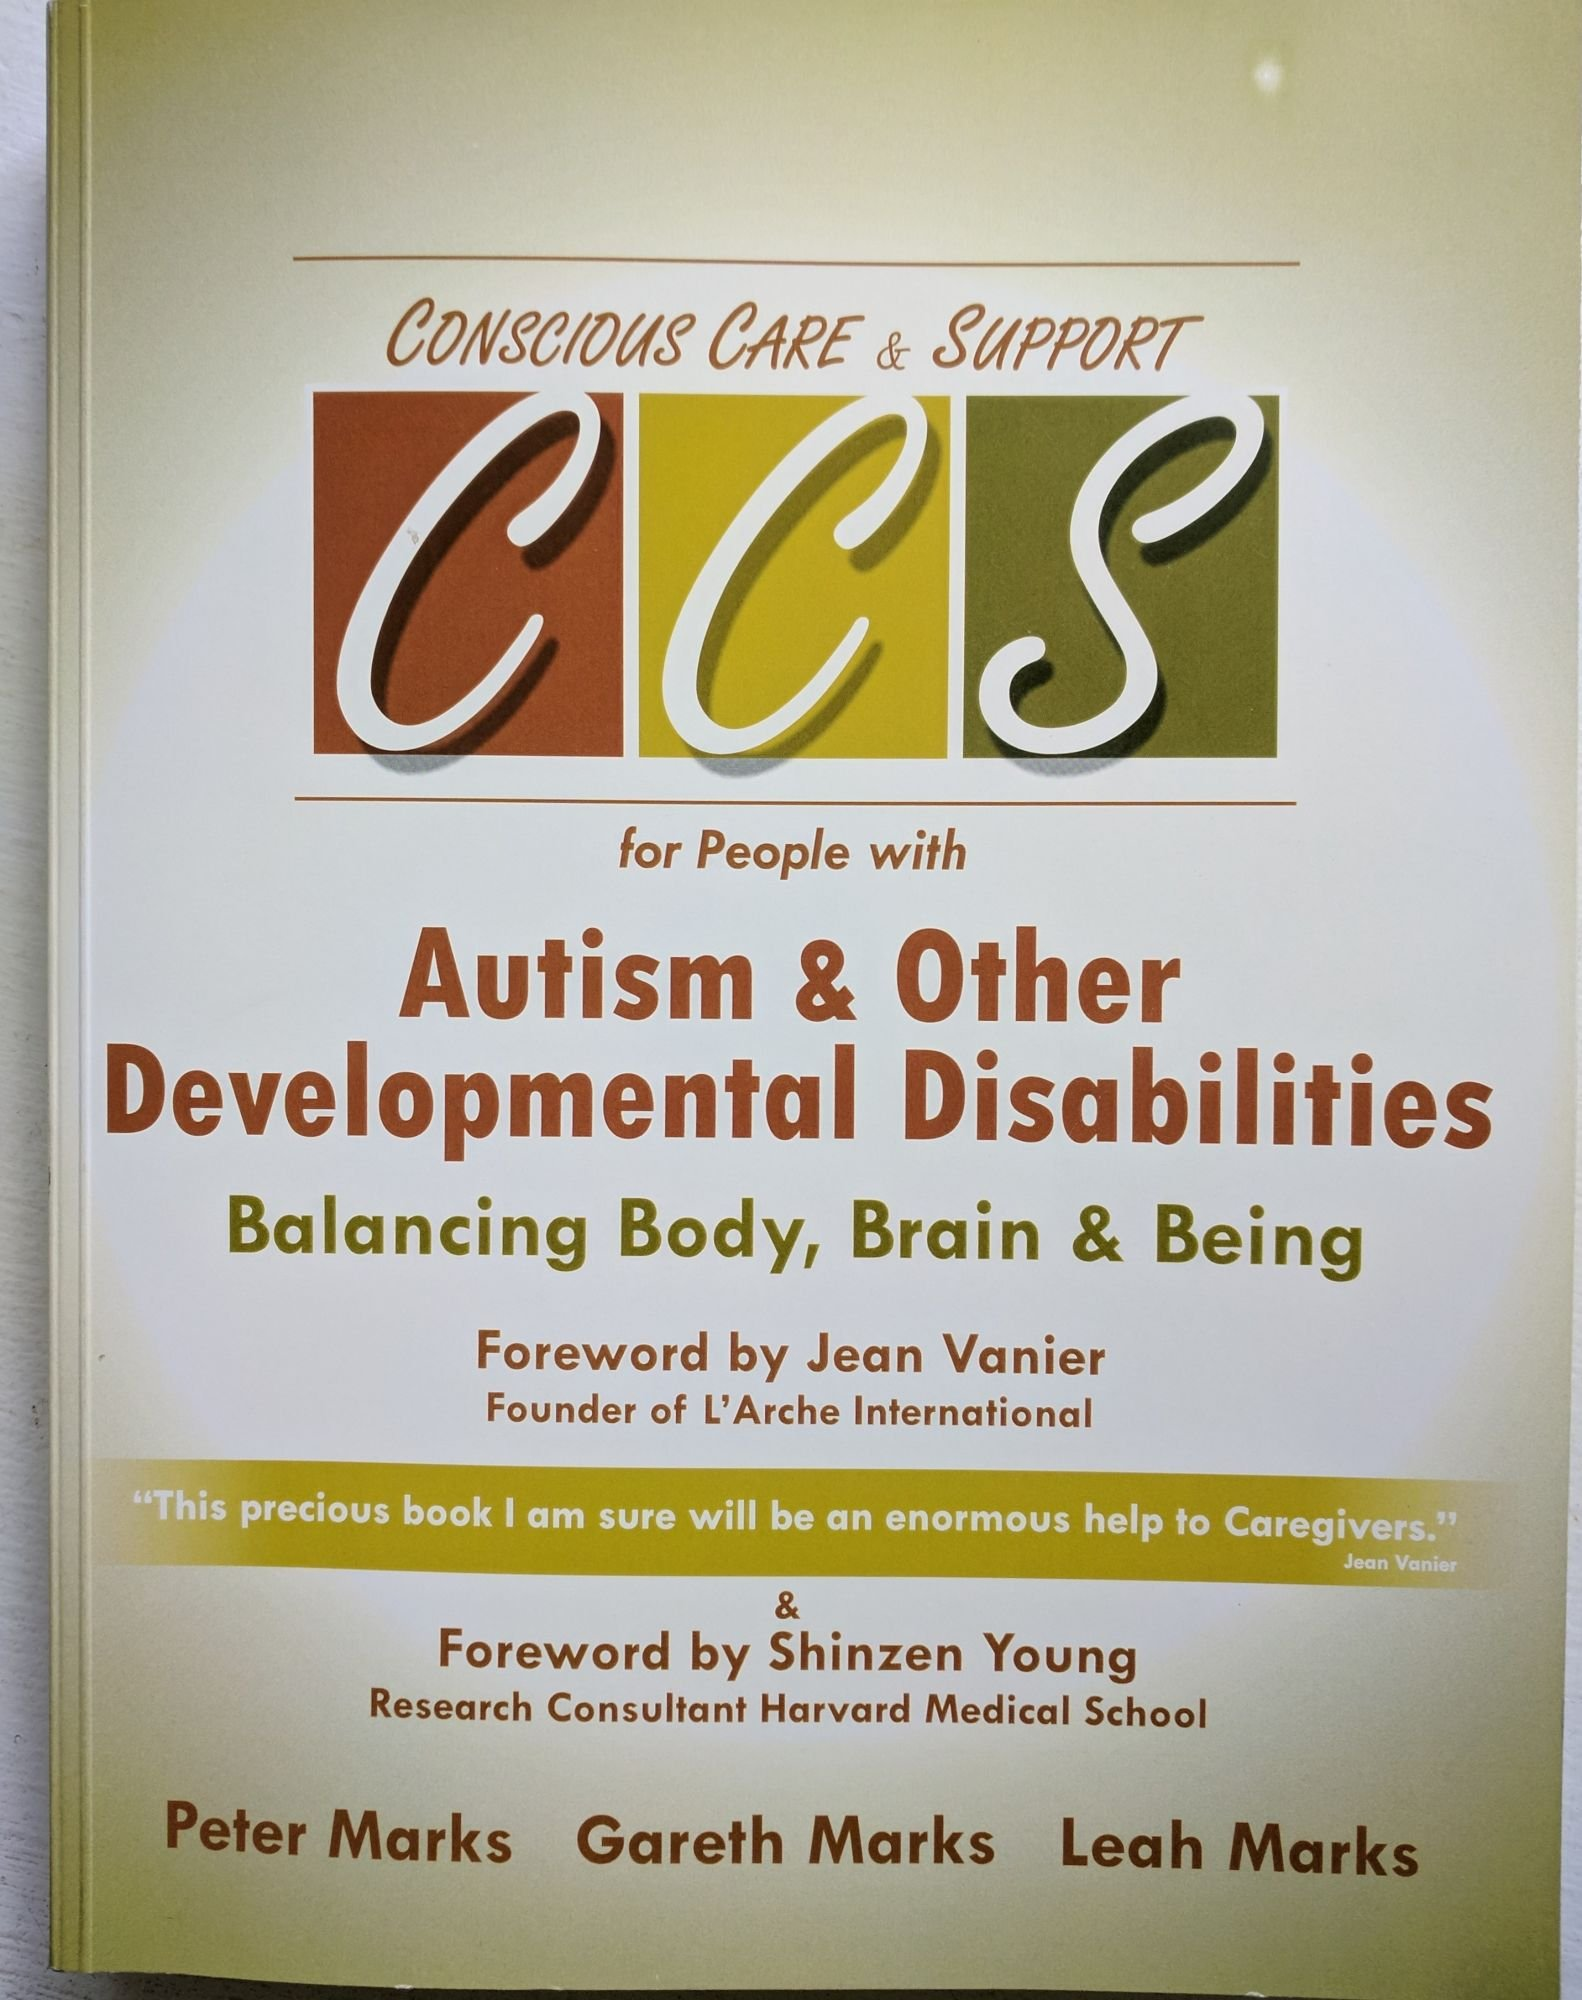 Book on Autism & Other Developmental Disabilities